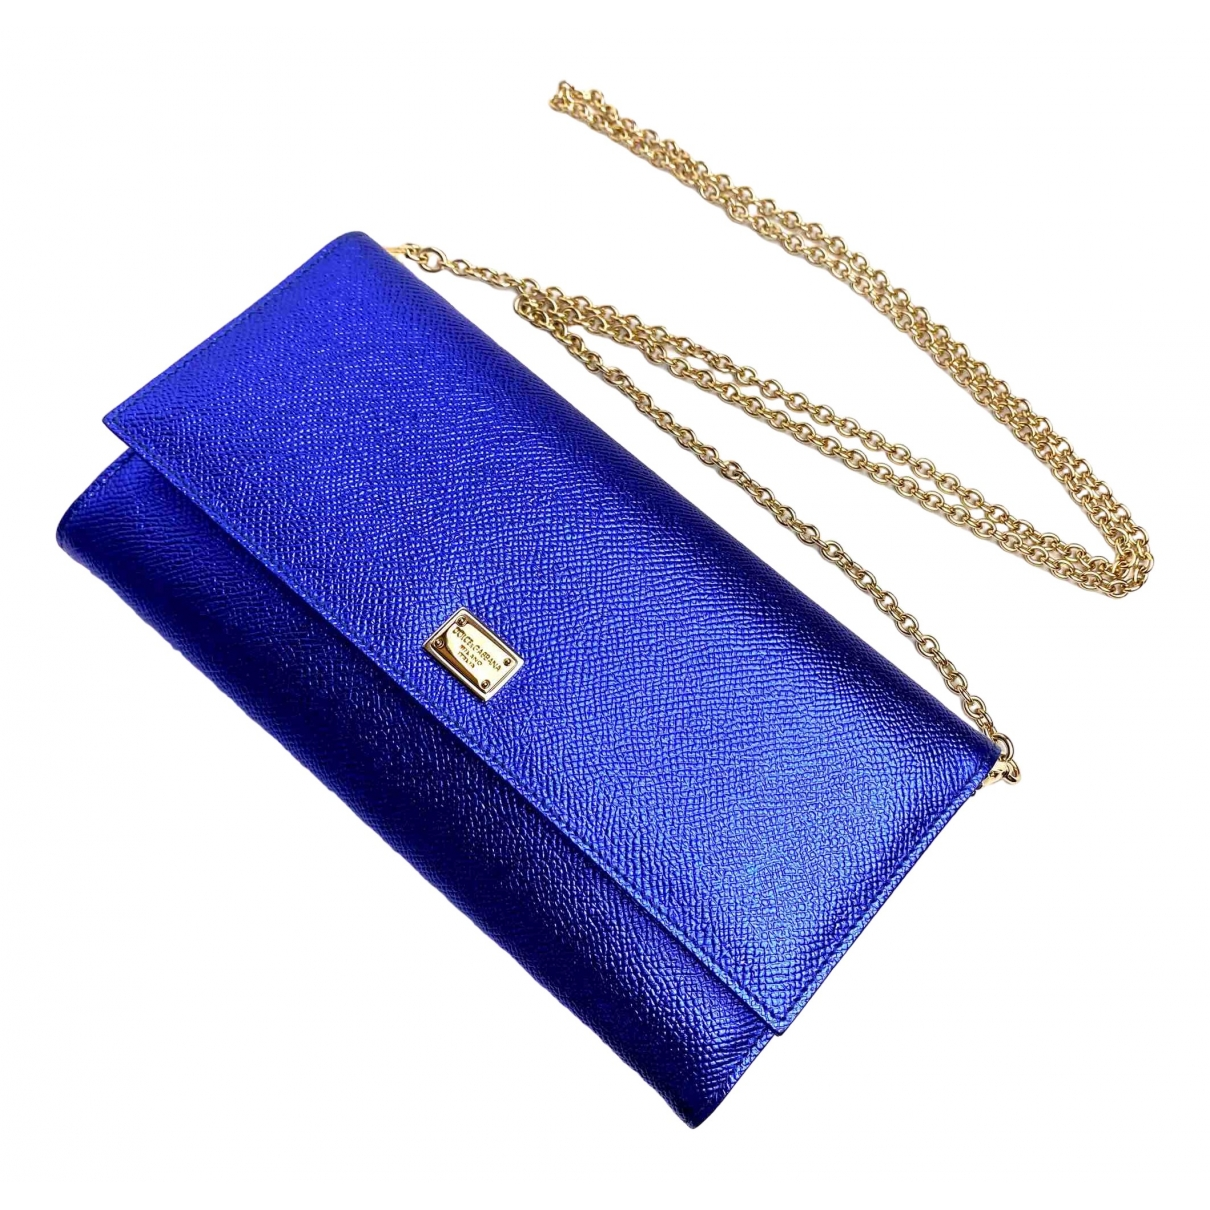 Dolce & Gabbana \N Blue Leather handbag for Women \N